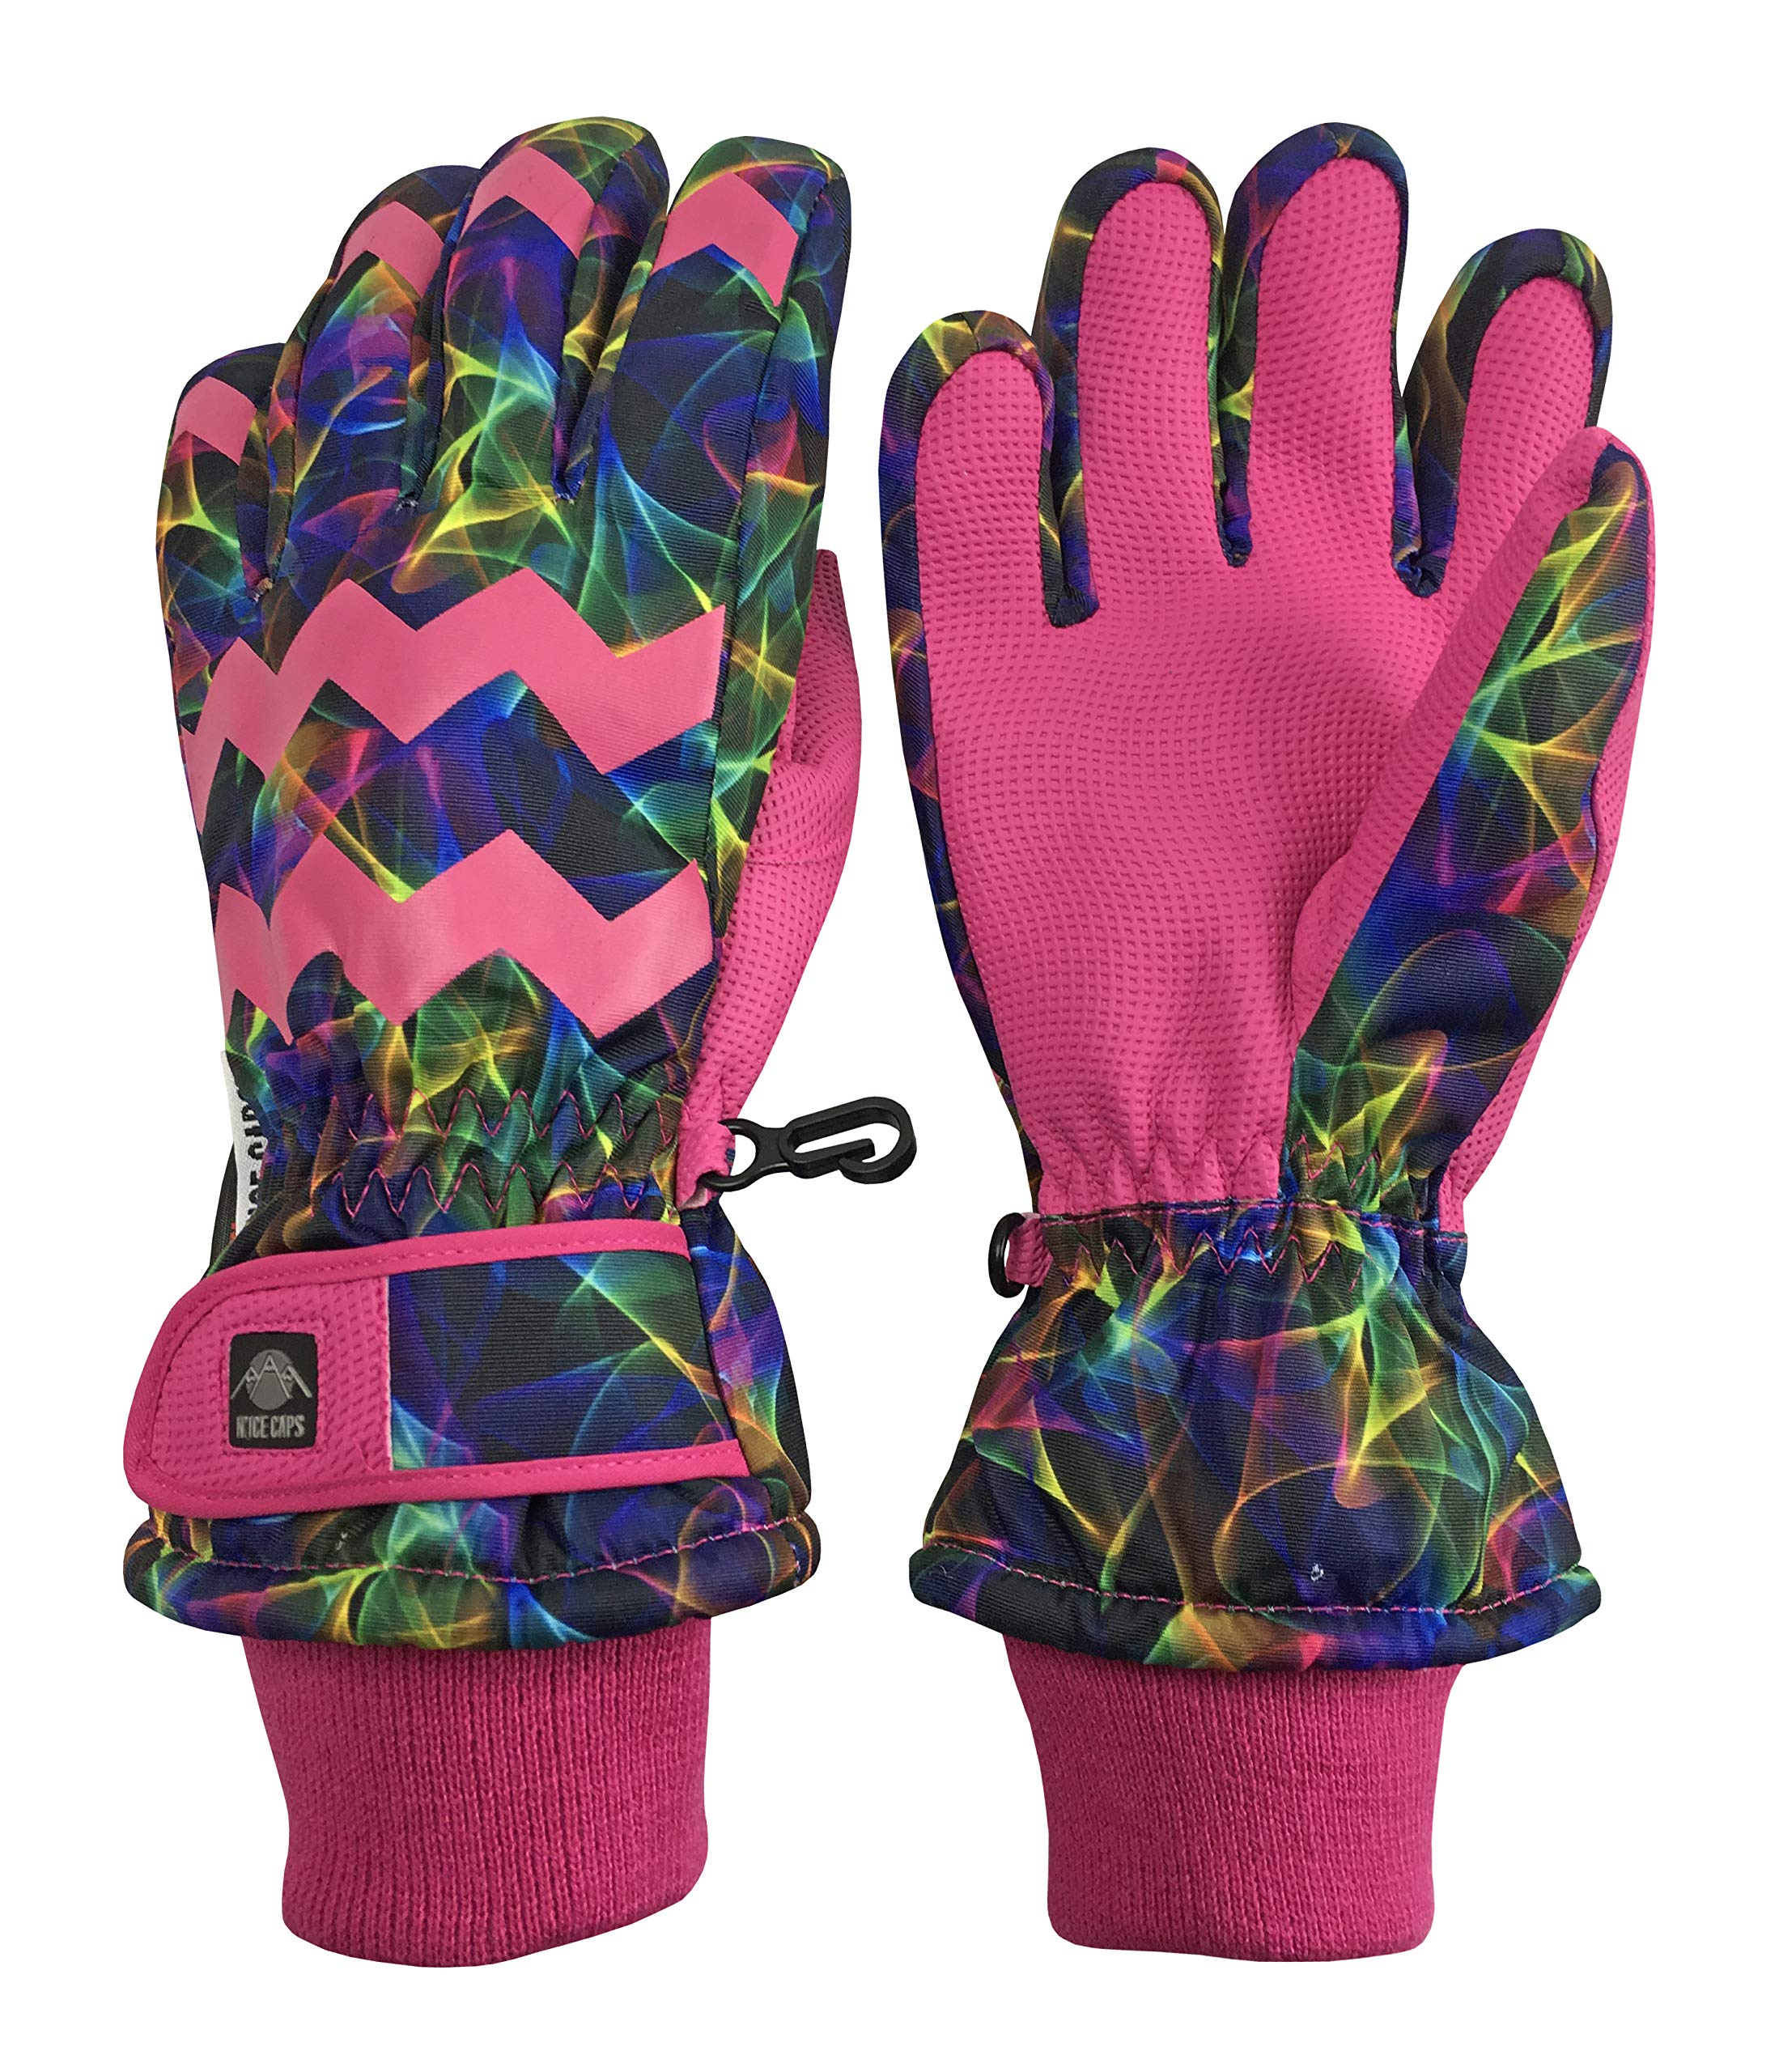 N'Ice Caps Girls Ombre Shaded Waterproof Thinsulate Winter Snow Ski Gloves (Fuchsia Multi Laser, 4-5yrs)